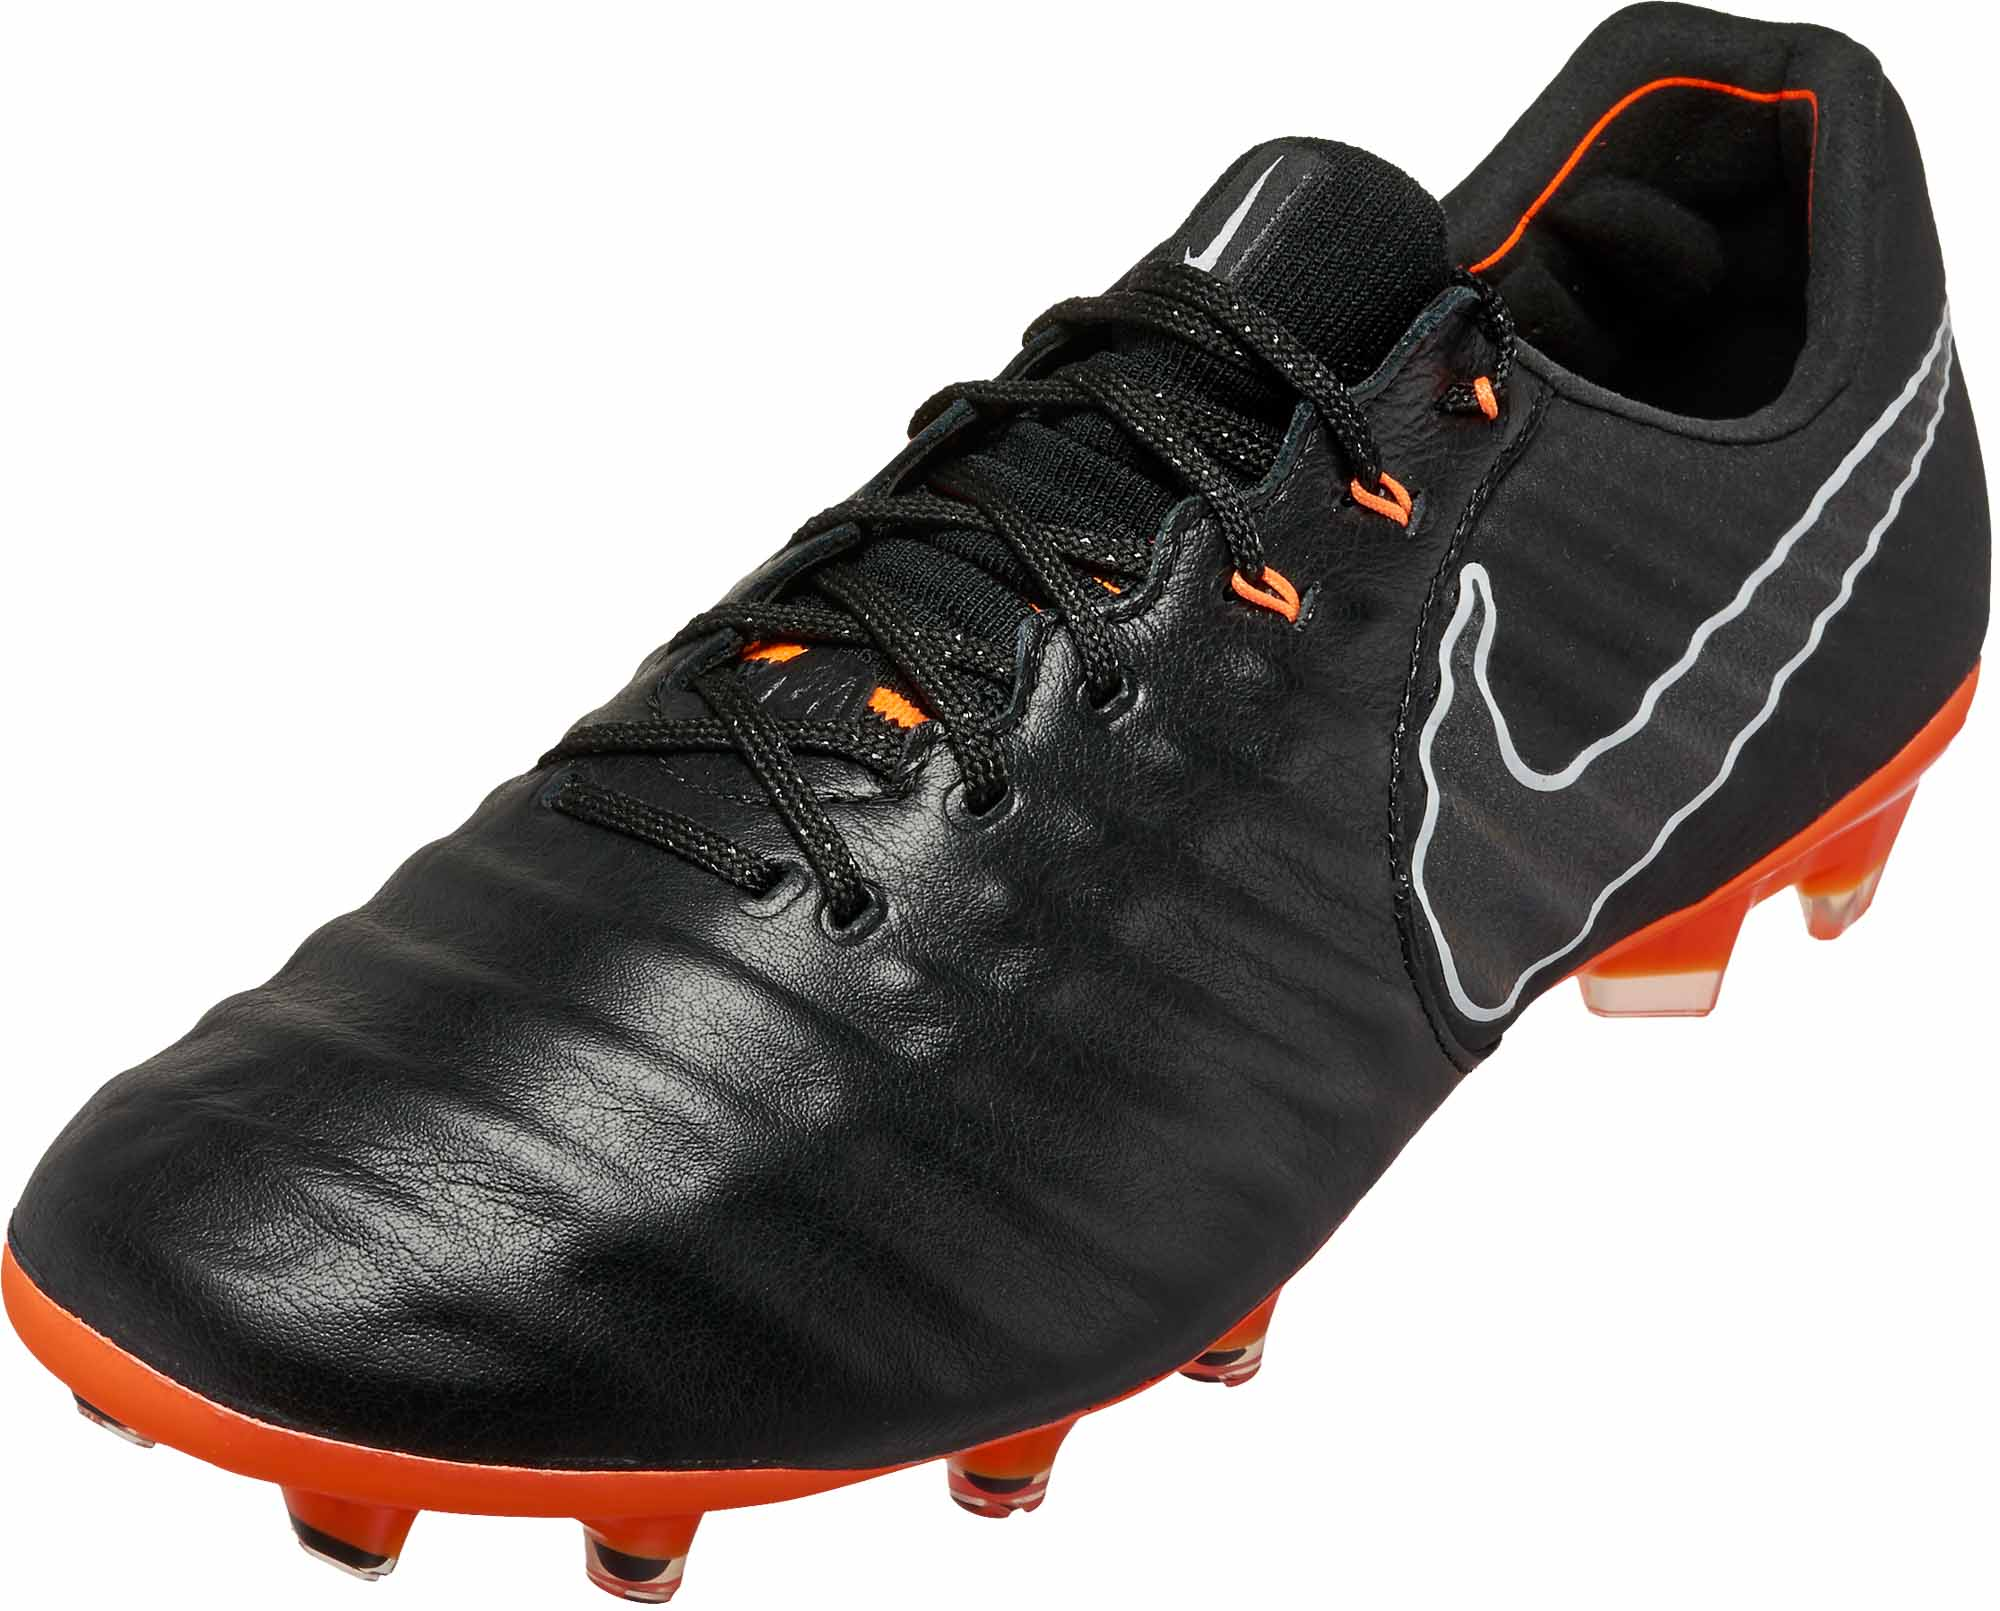 Nike Tiempo Legend 7 Elite FG – BlackTotal Orange